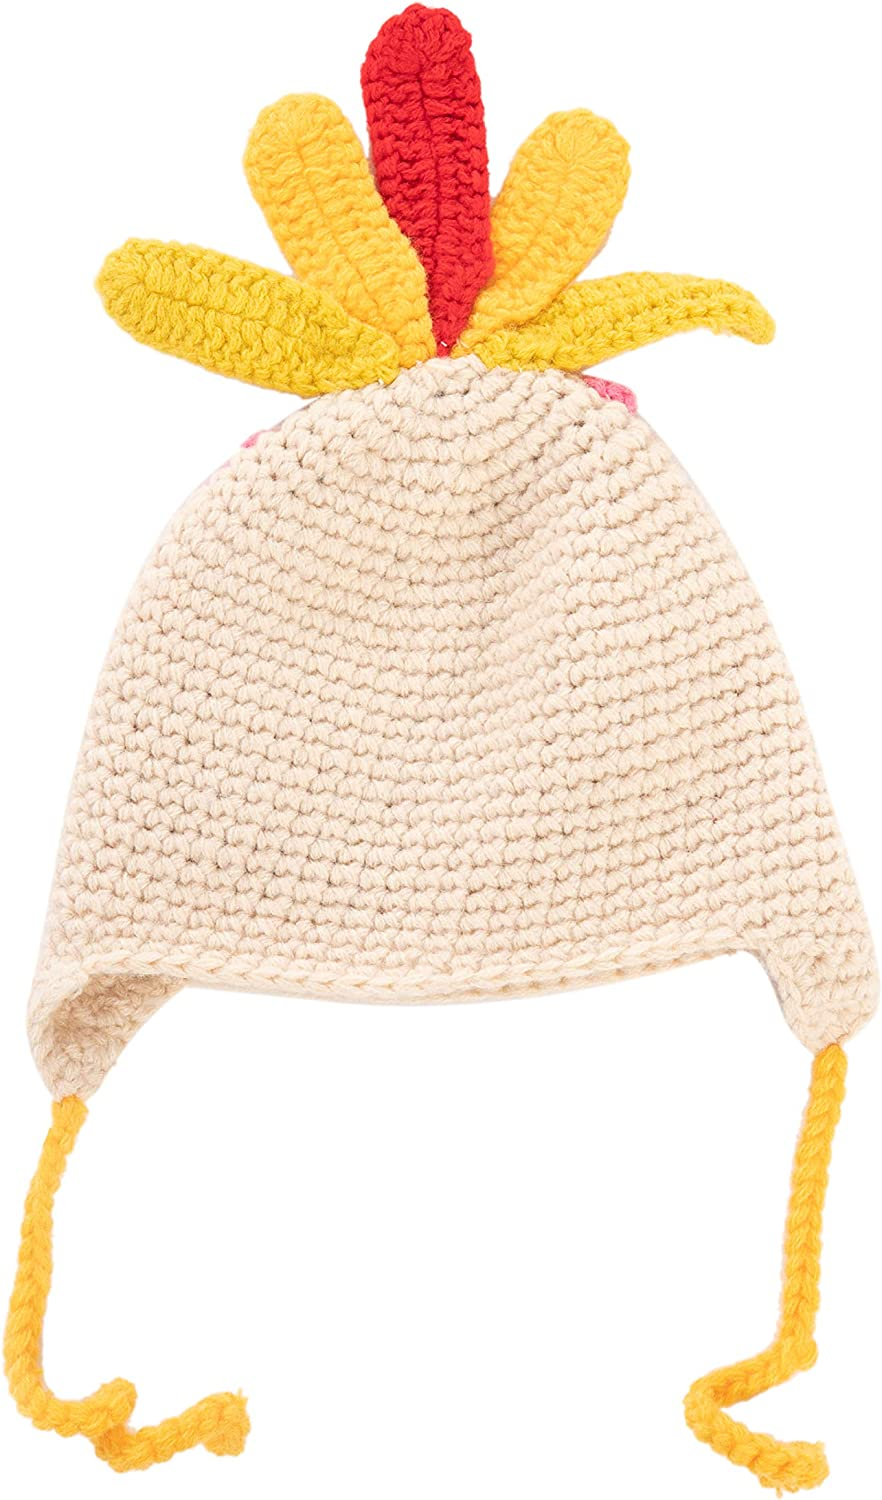 Hat Photo Prop and Carnival Cosplay Role Play JOYIN Thanksgiving Christmas Beanie Turkey Knitted Hat Cap for Baby Toddler Thanksgiving Dress Up Party